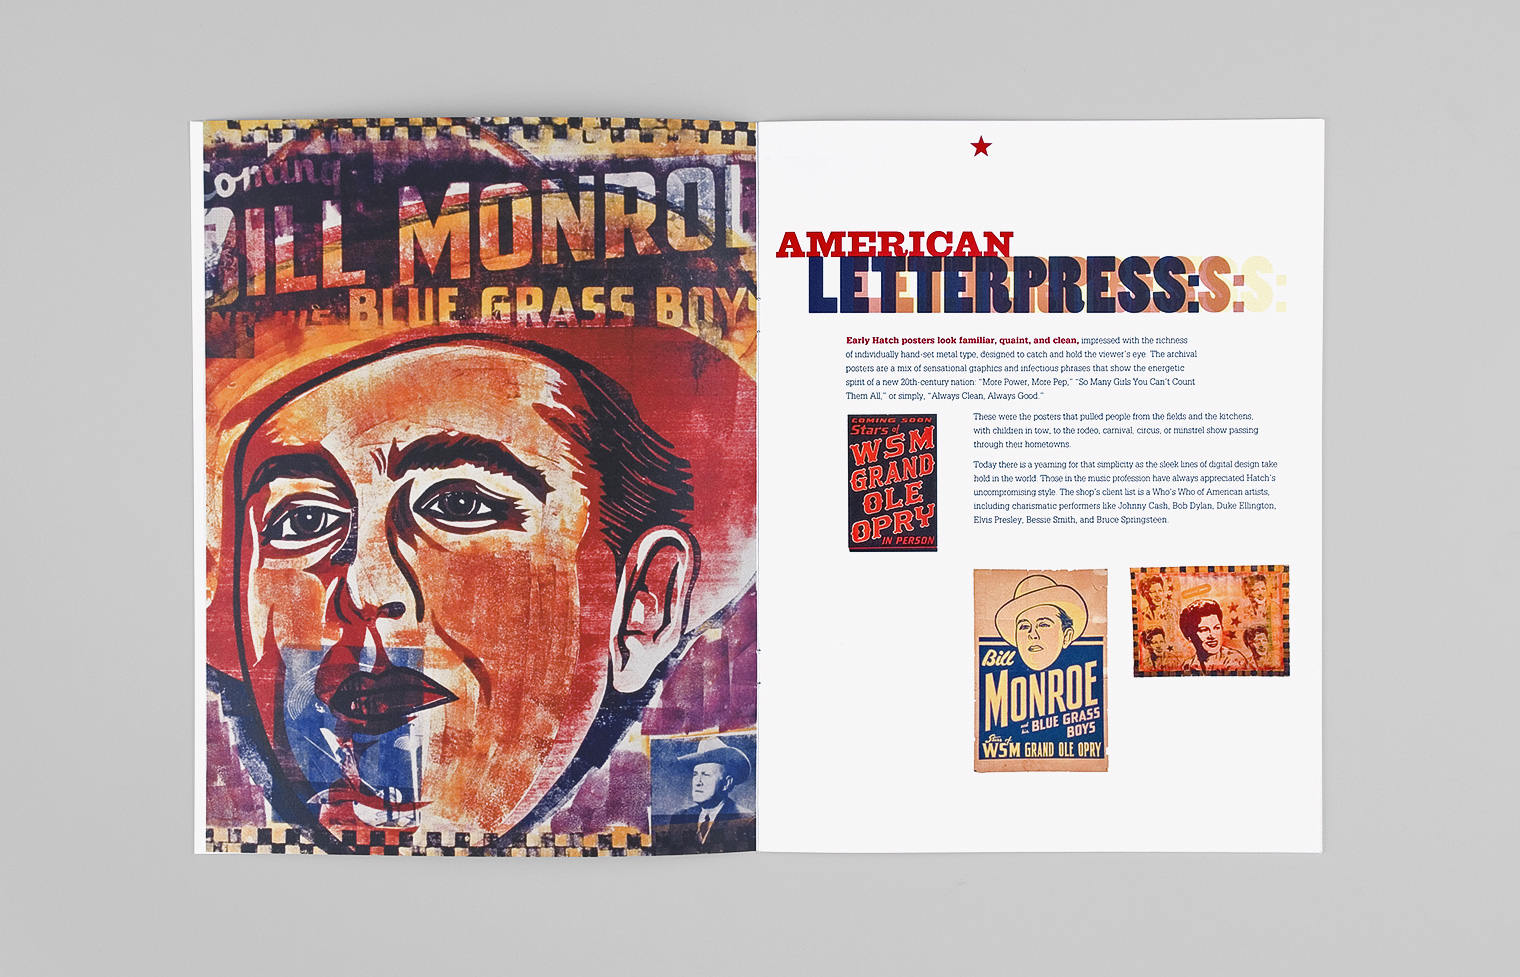 A spread from the exhibition prospectus shows old and new Hatch prints, wood type headlines, and text about the show.